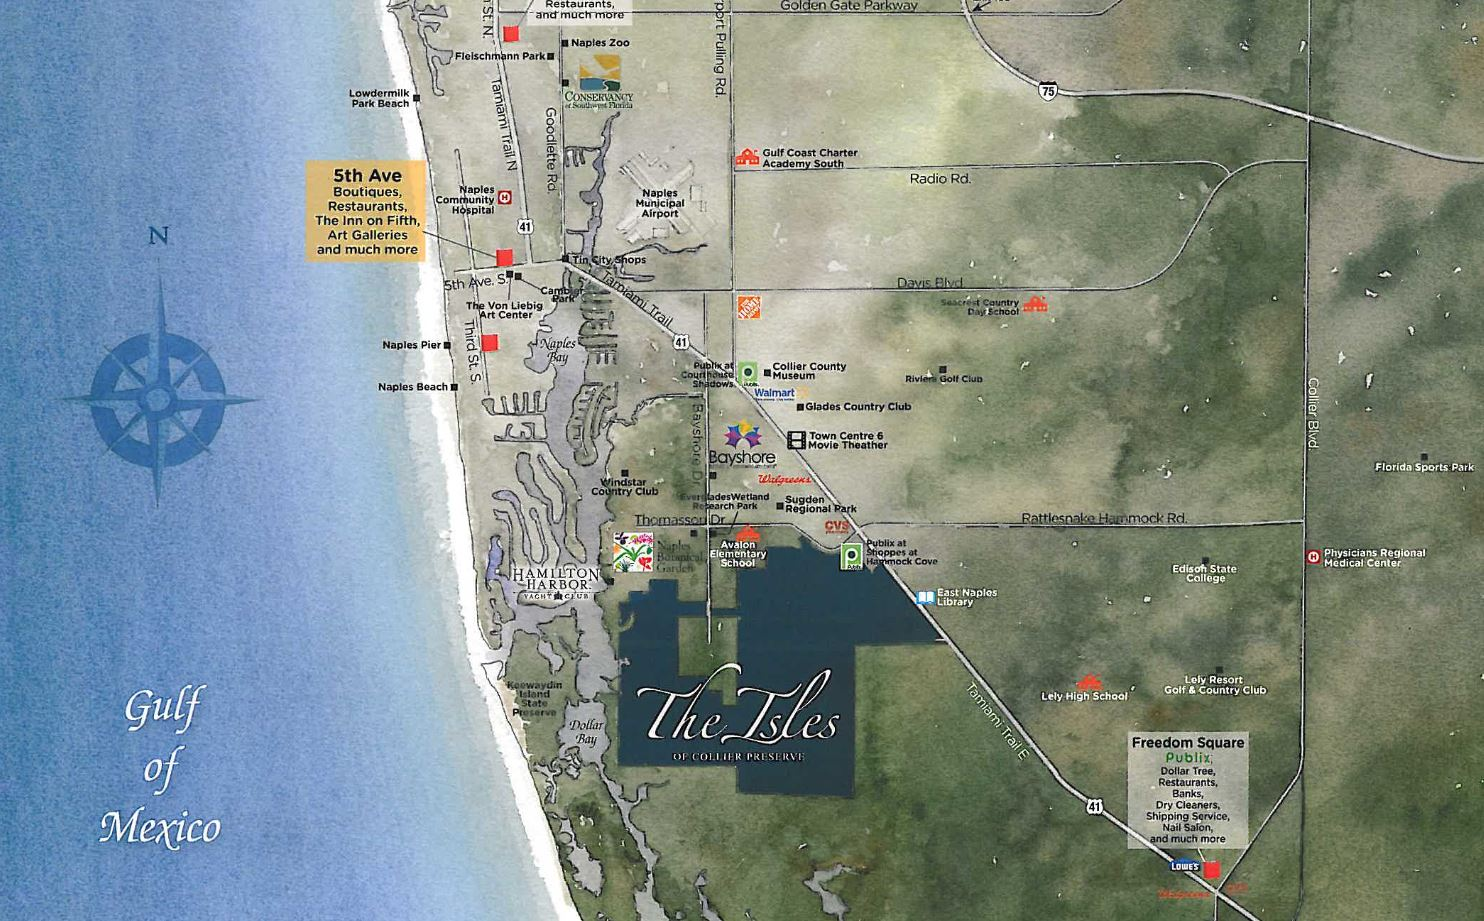 Map of the The Isles of Collier Preserve in Naples, Florida.